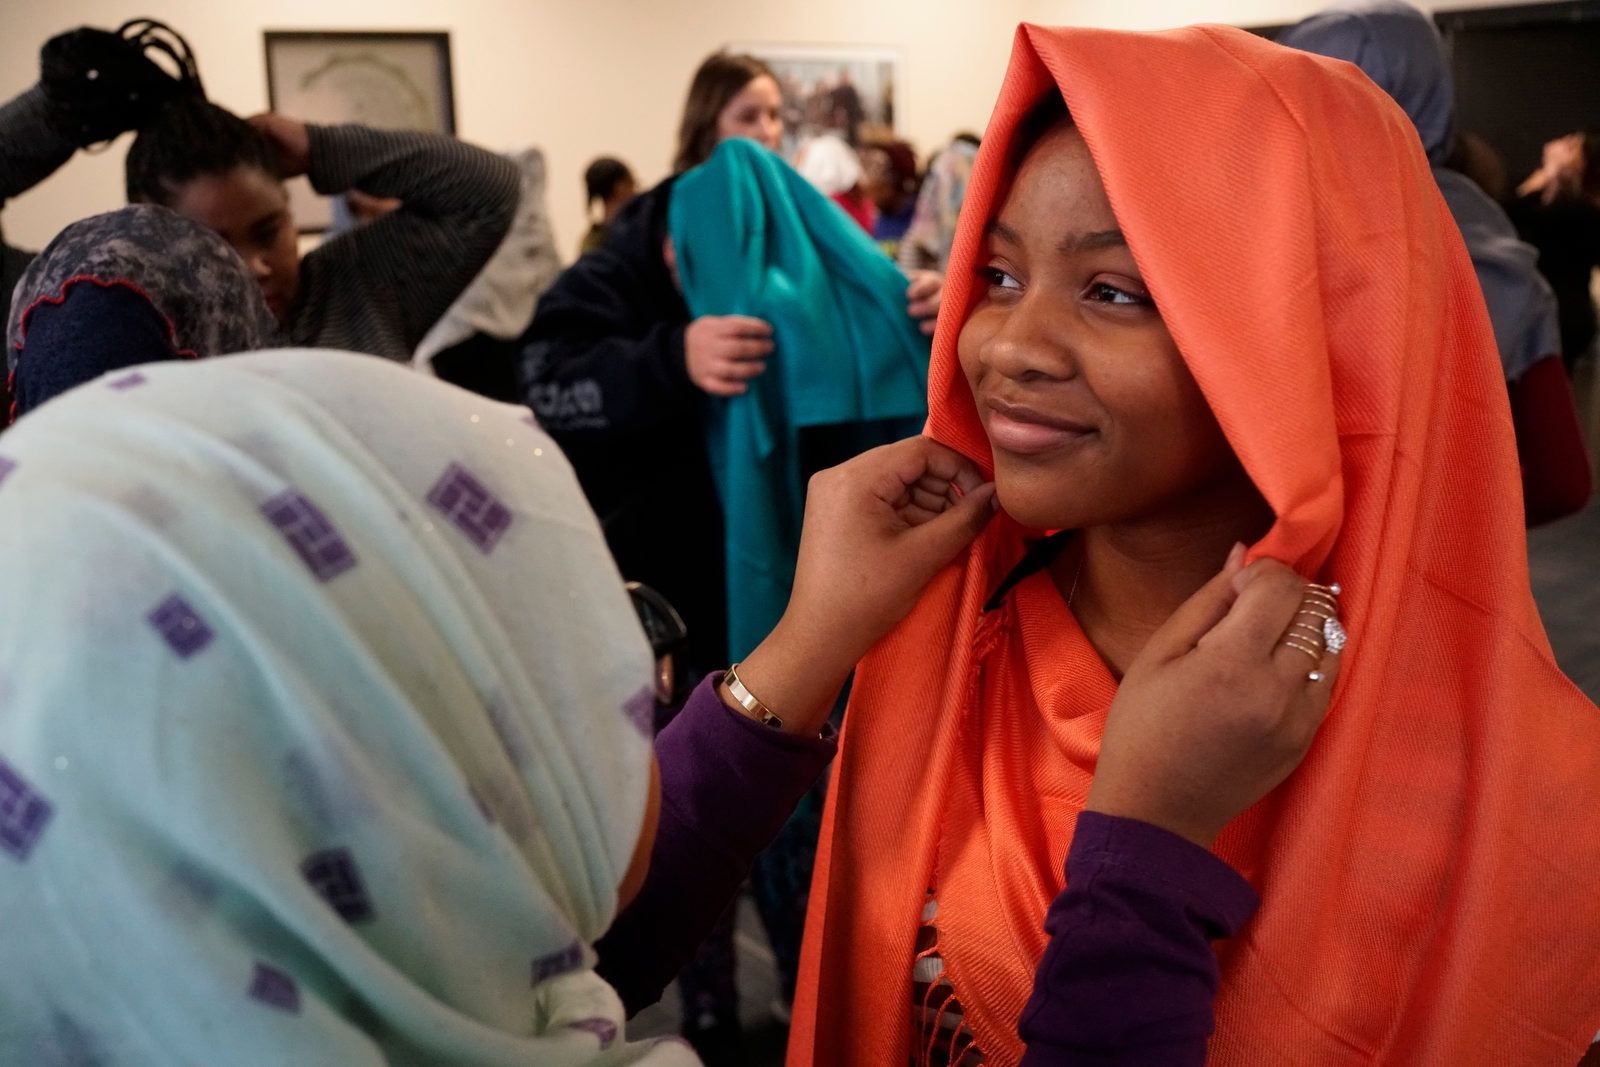 Senior Asia Peay, 17, gets help from sophomore Samira Abdulkadir as she tries on a hijab during an event to celebrate World Hijab Day at Leonardo daVinci High School, Thursday, Feb. 1, 2018.  Peay is one of dozens of young women who volunteered to wear the hijab throughout the day for a cross-cultural experience.